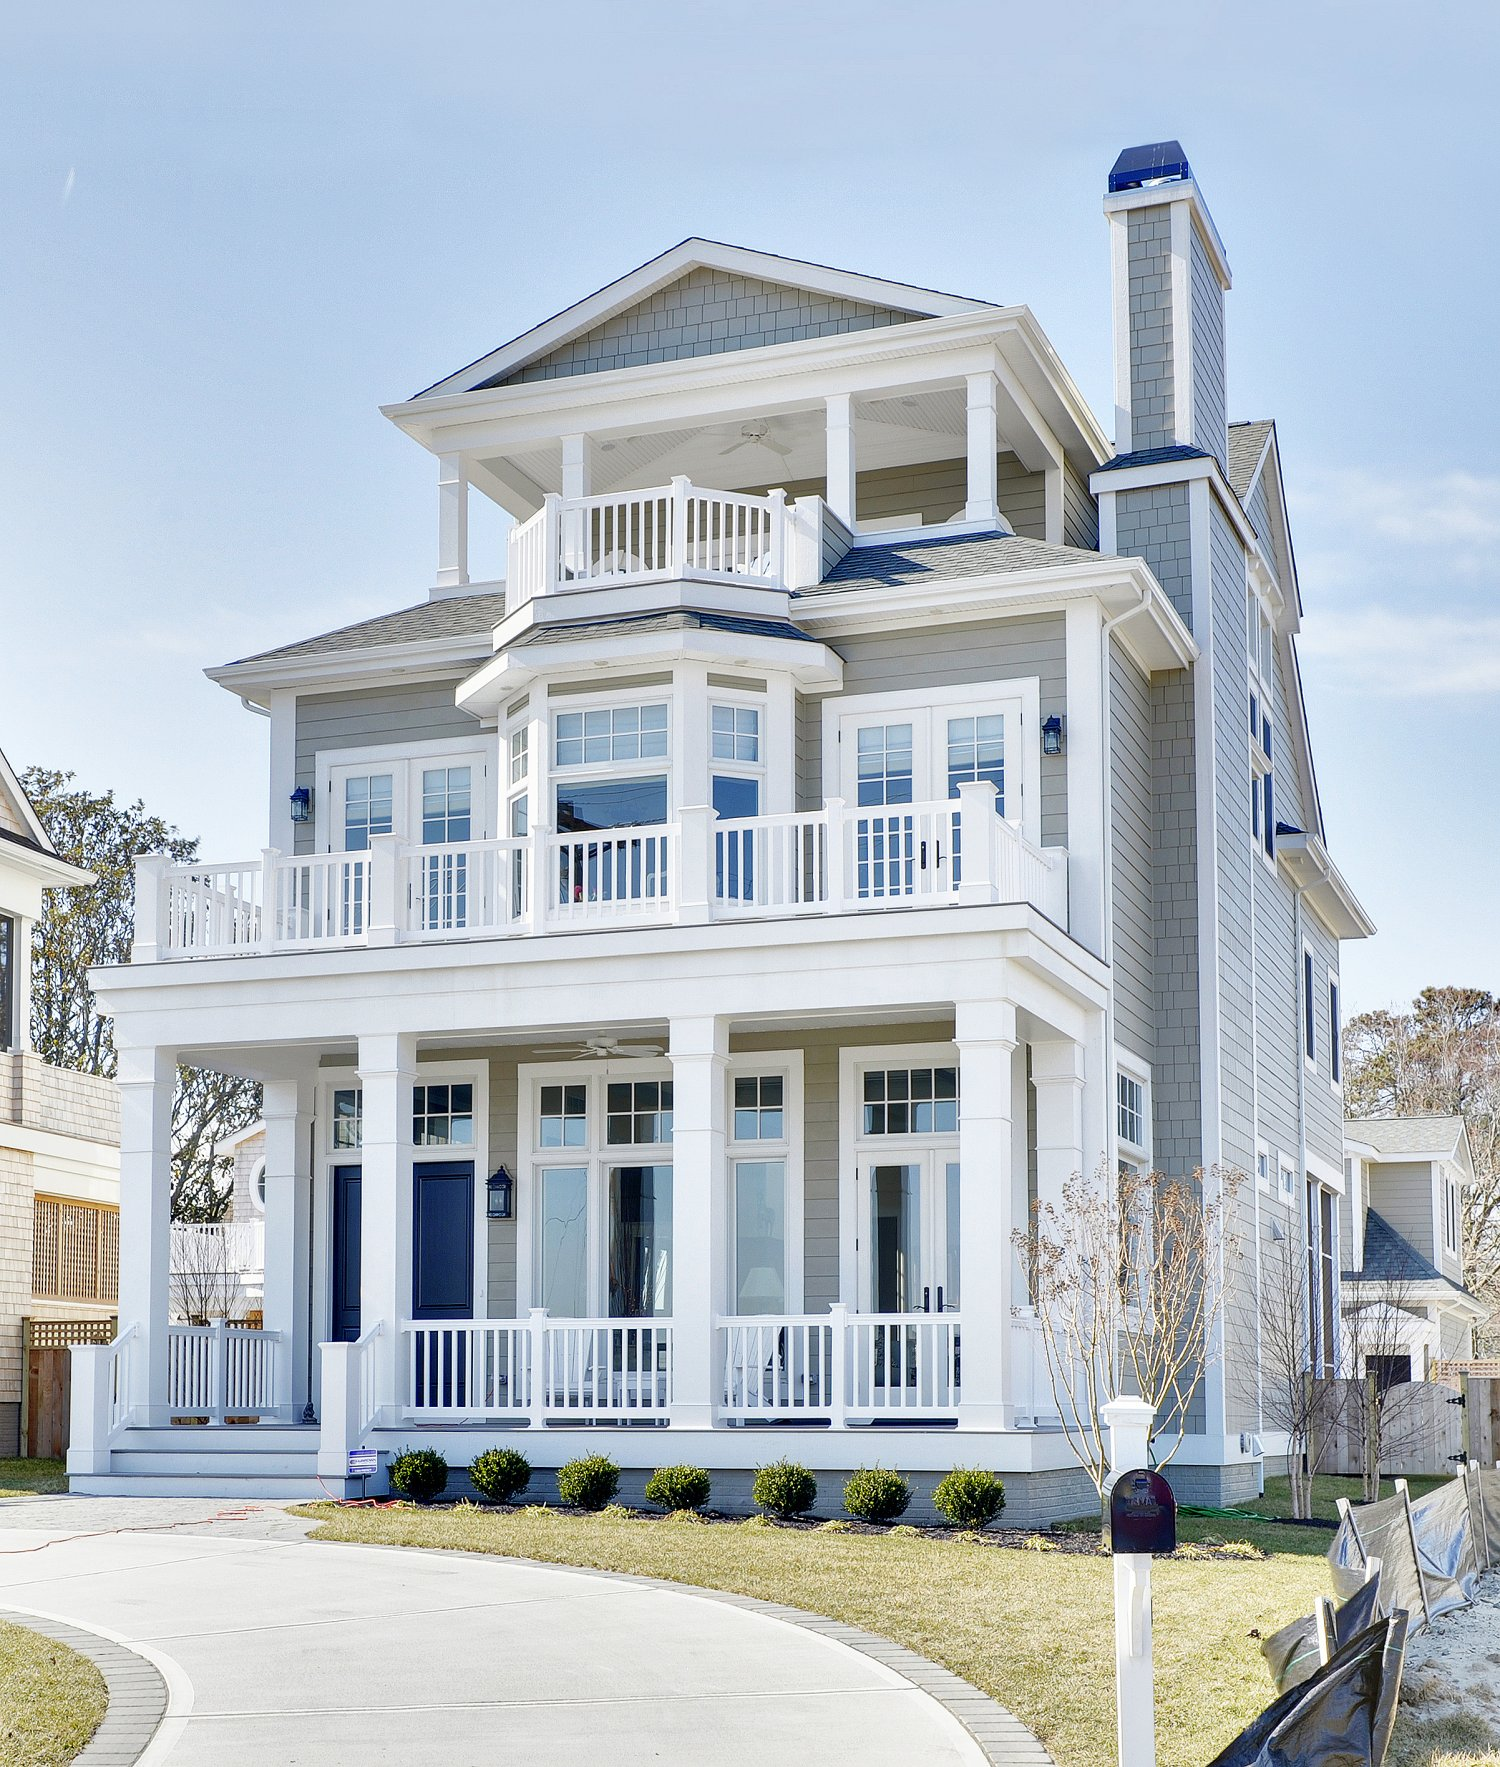 Silver lake photo gallery of custom delaware new homes Coastal homes